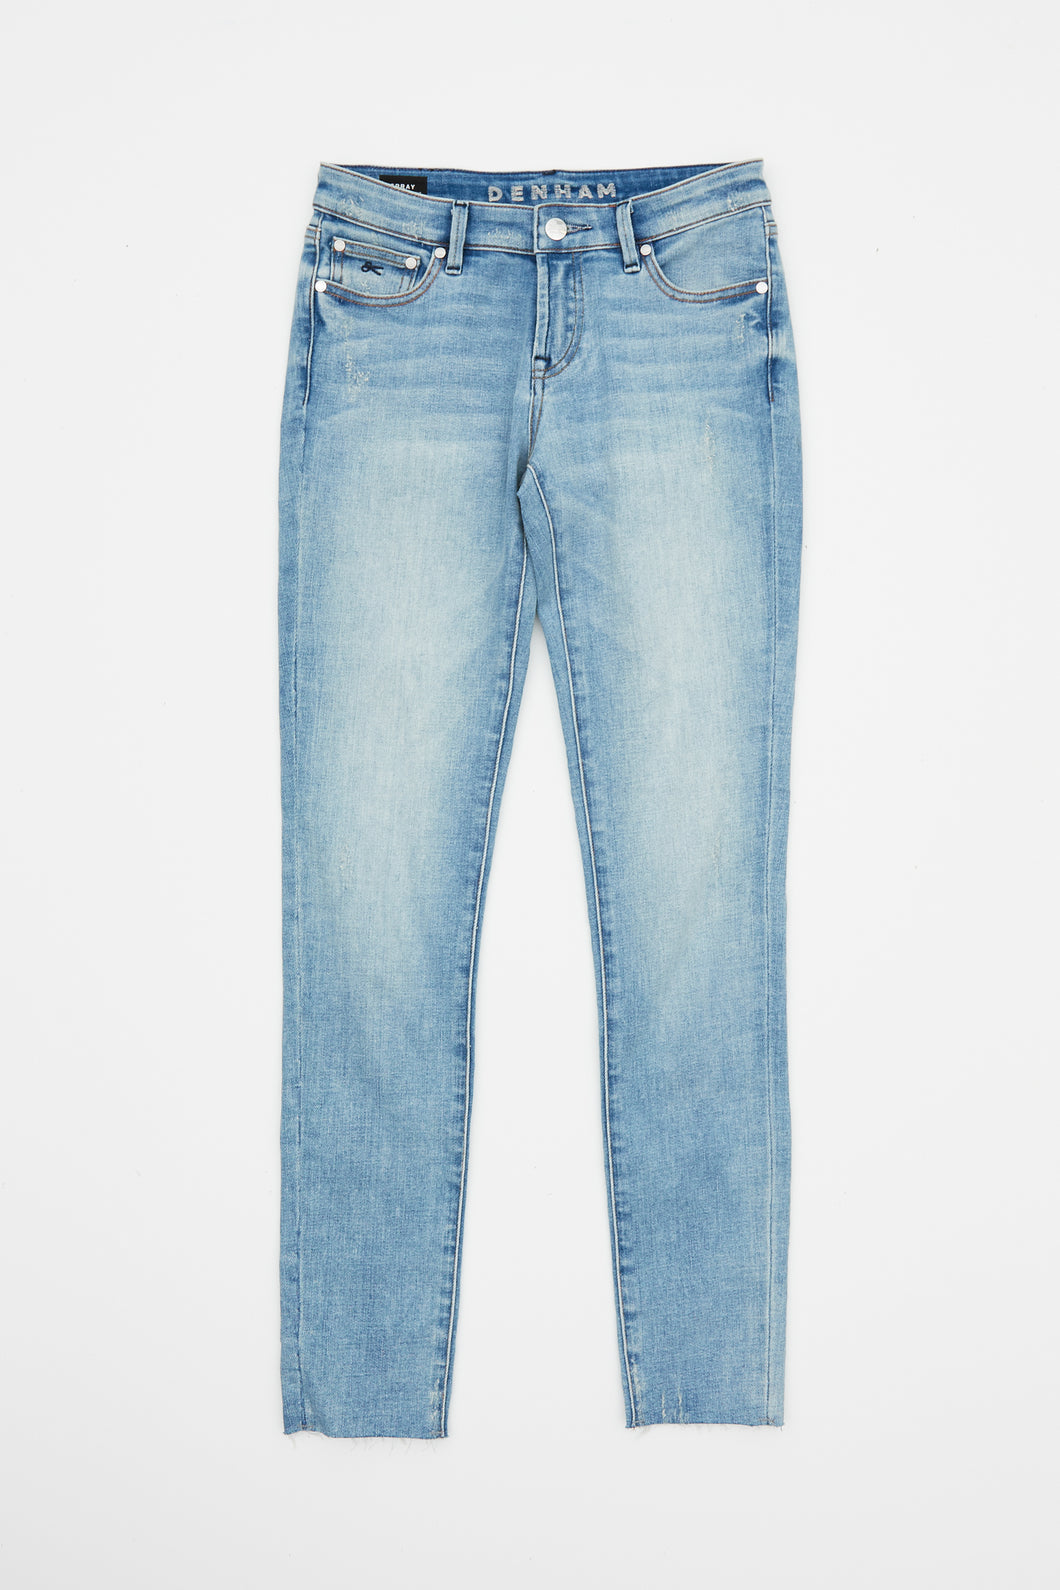 Denham spray jeans BLCLB